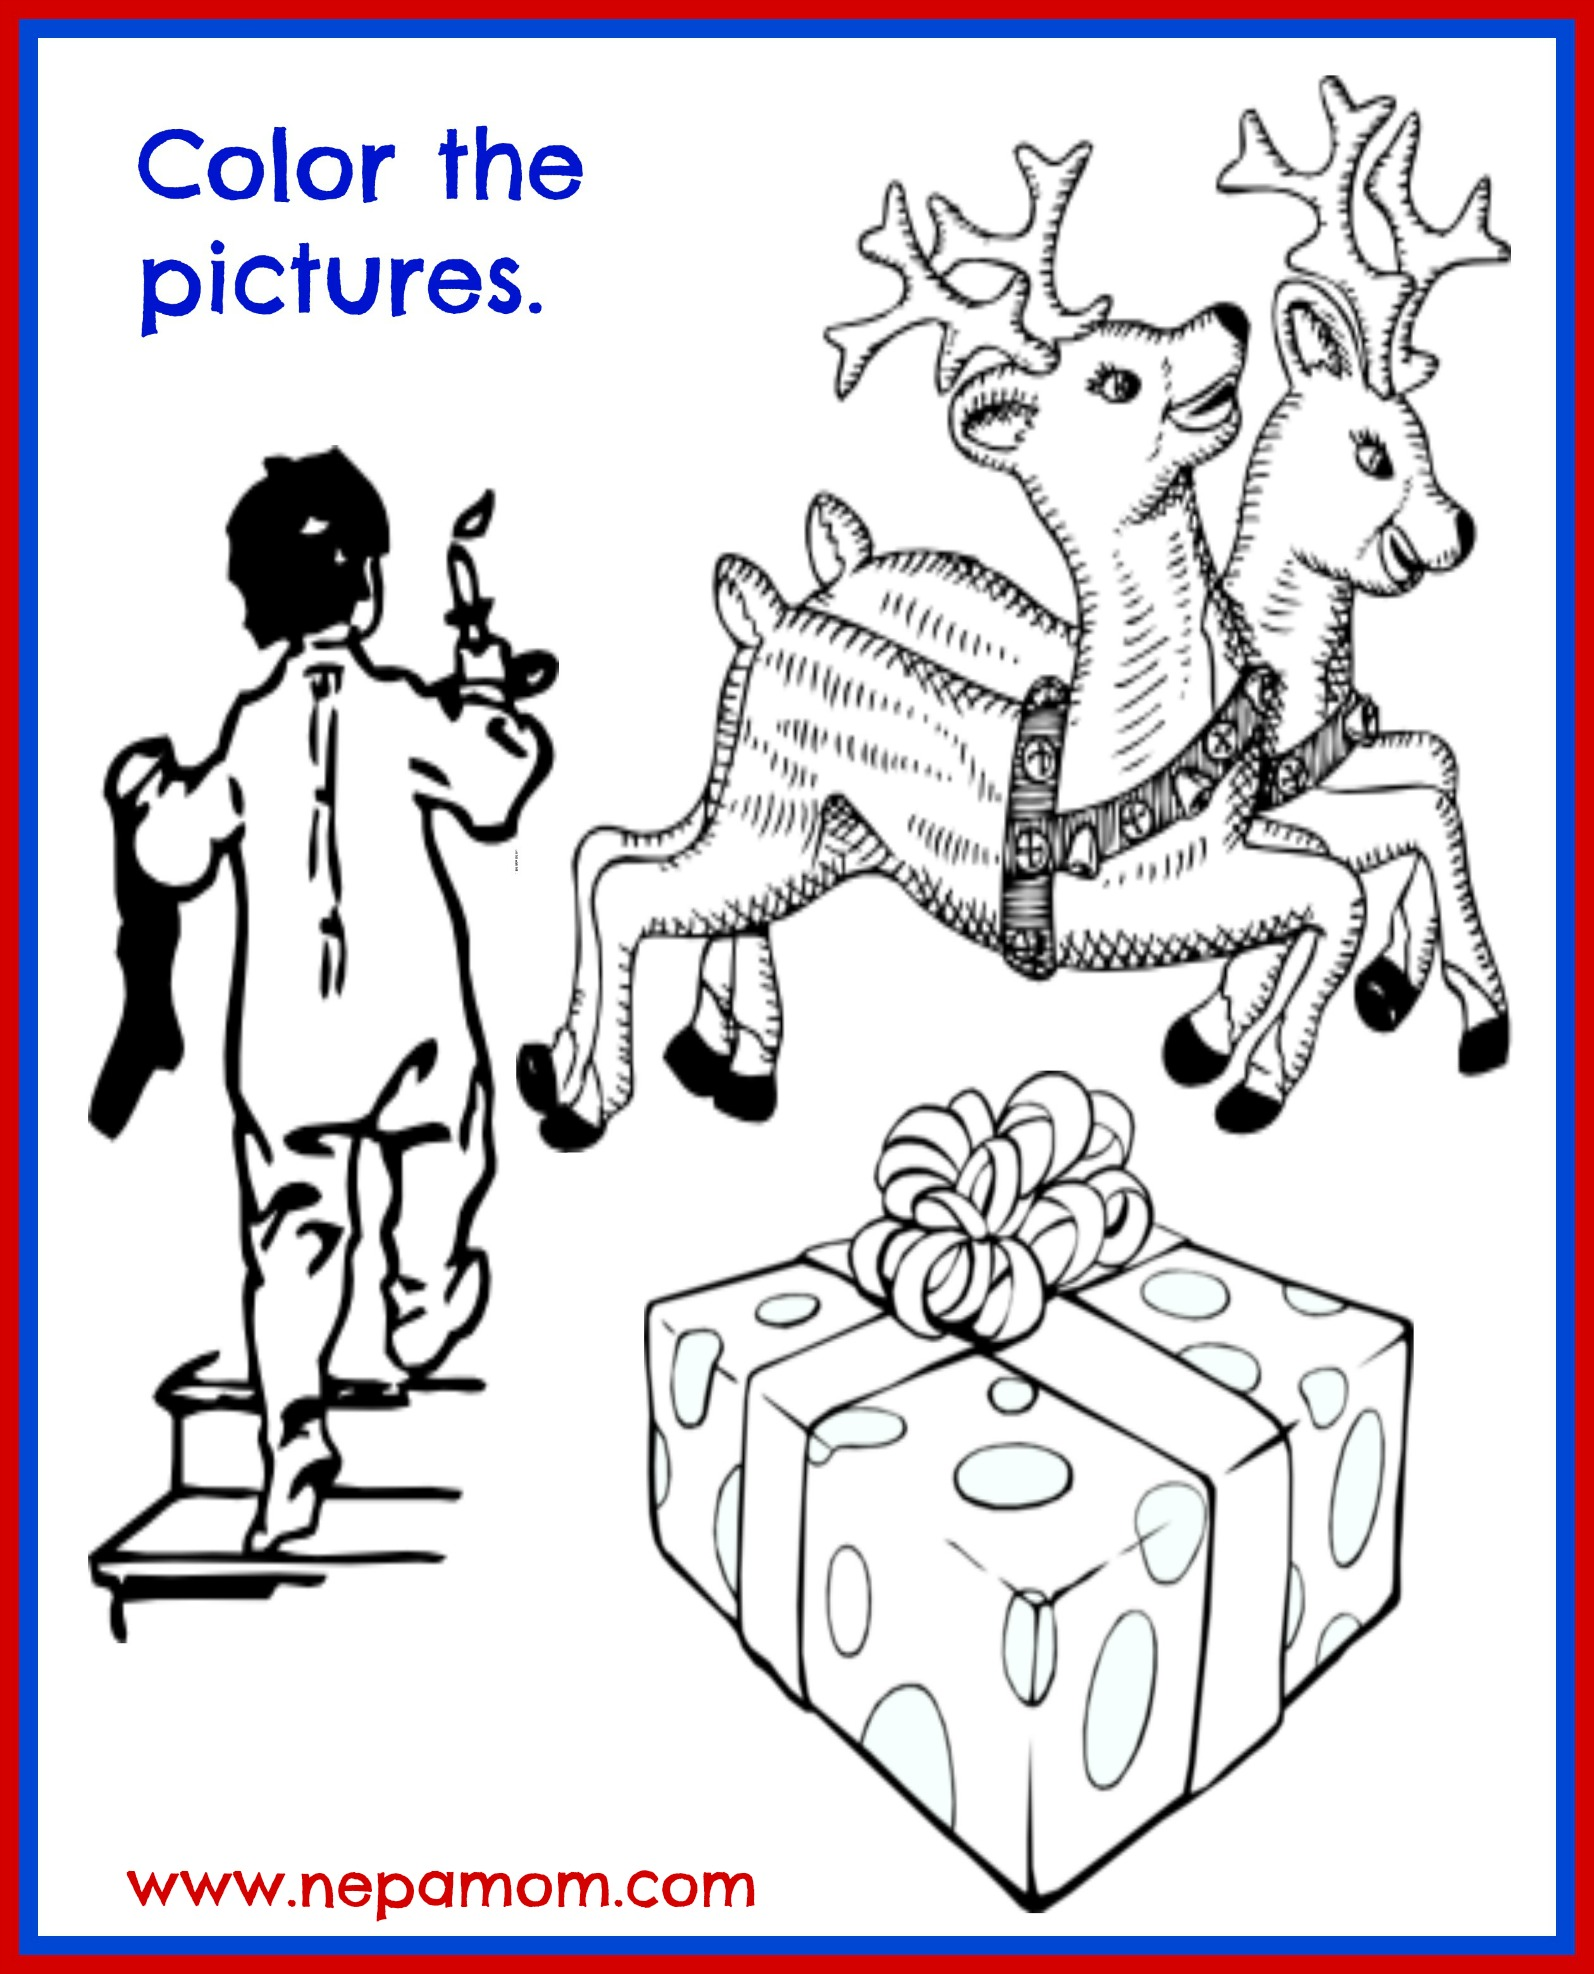 merry christmas coloring pages - Merry Christmas Coloring Pictures